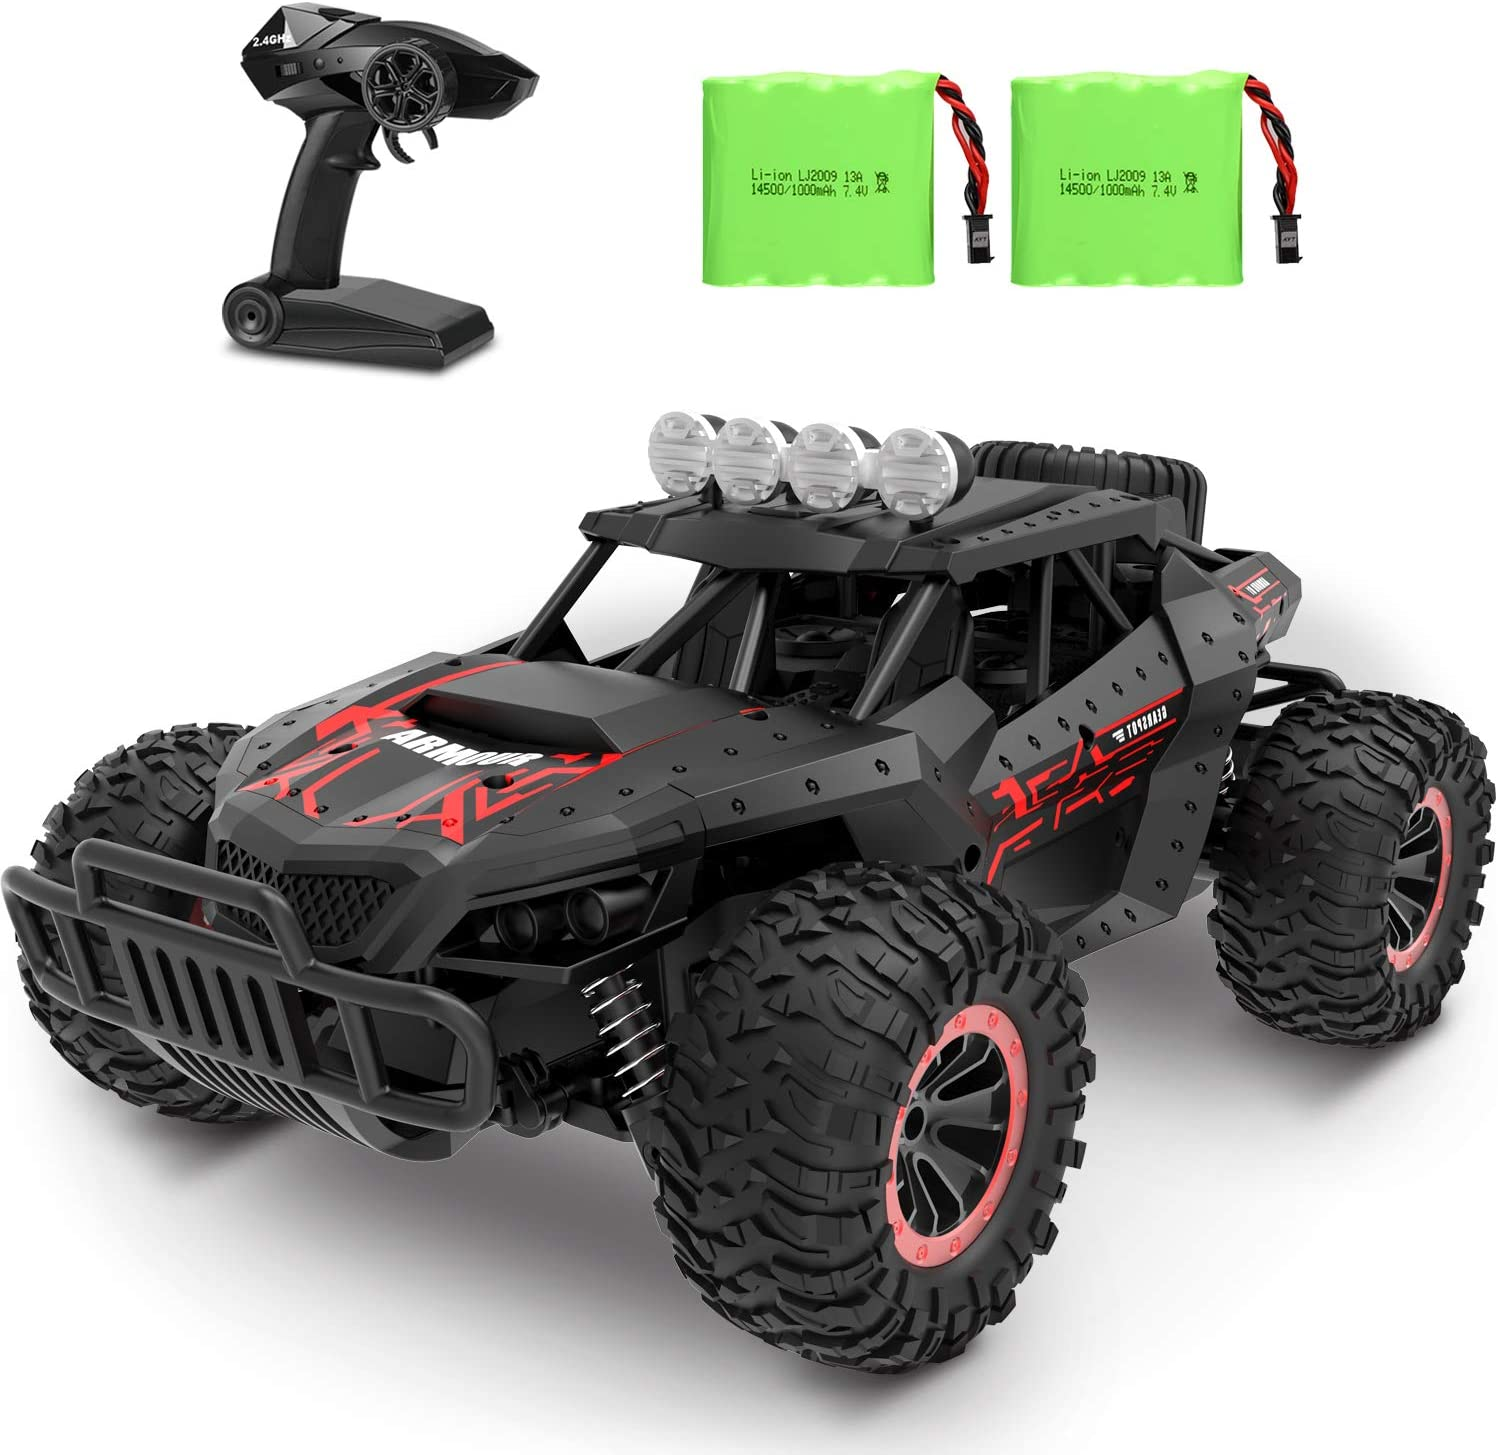 Amazon.com: RC Car 1:16 Scale Remote Control Car Off-Road RC Trucks 2.4 GHz  with 2 Rechargeable Batteries,Electric Toy Car for All Adults & Kids: Toys  & Games